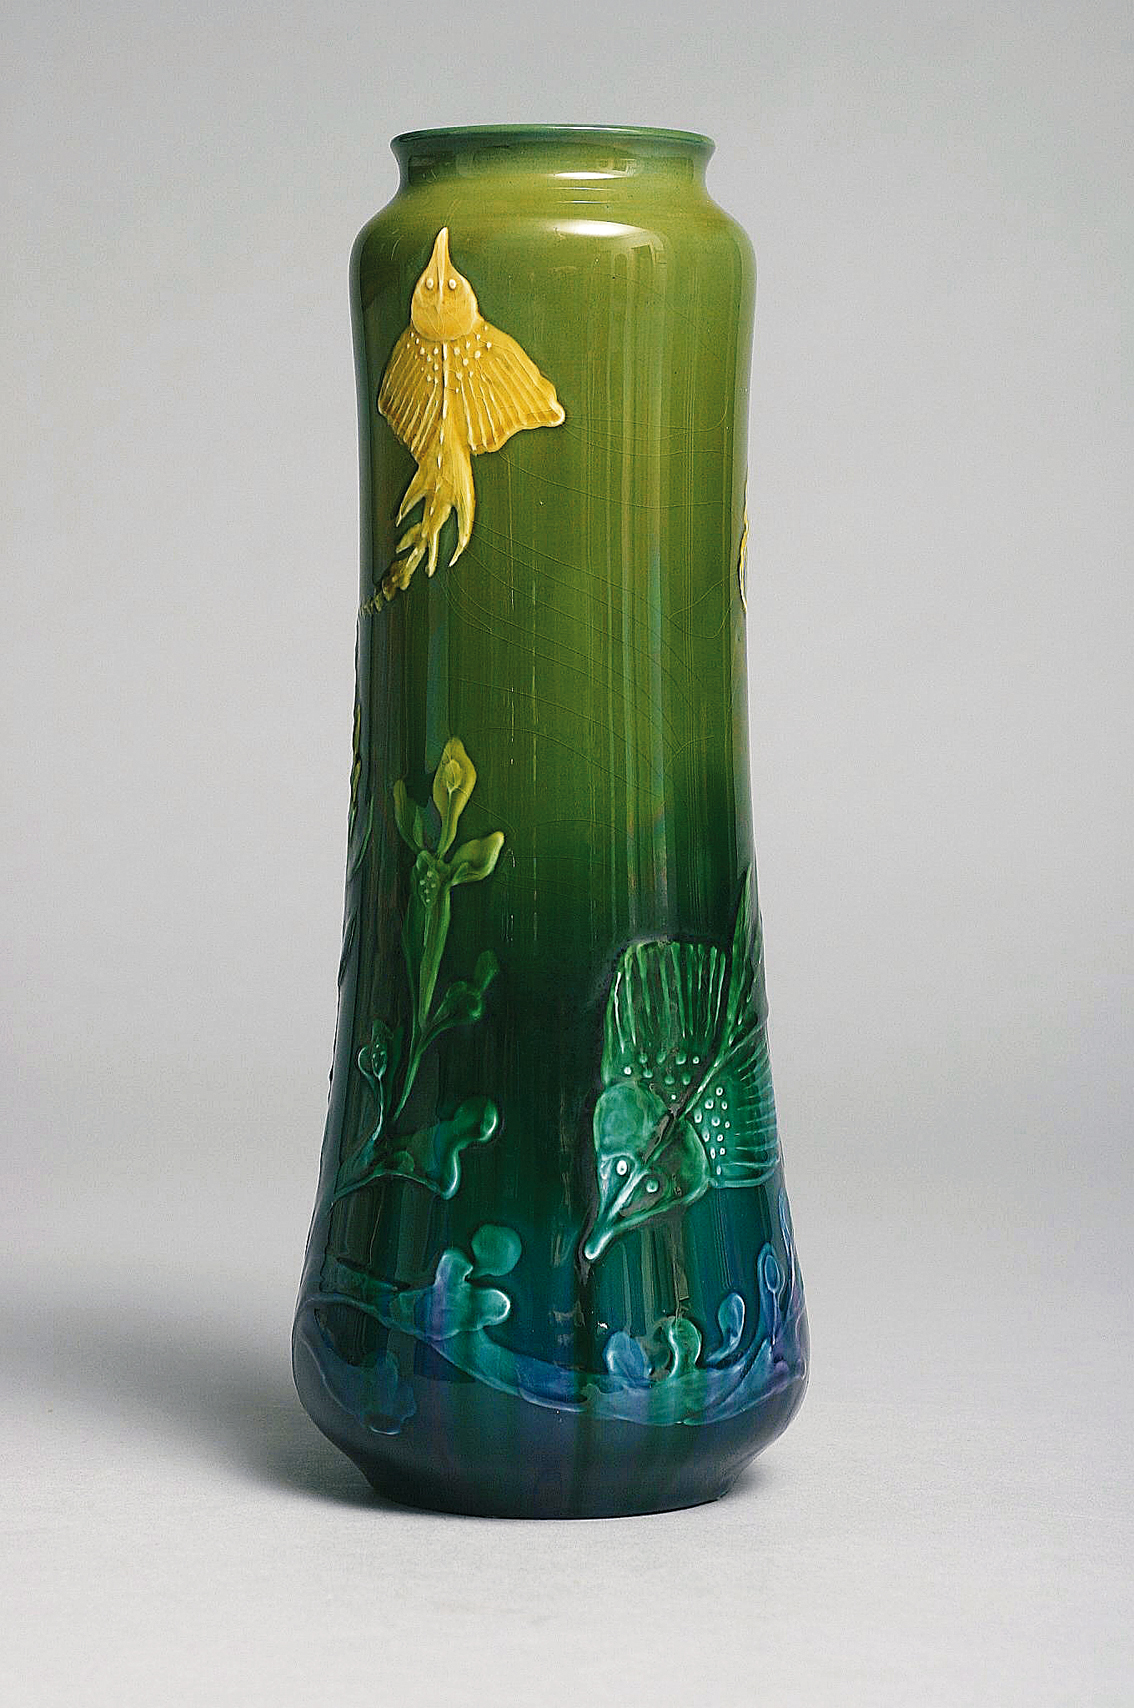 An art-nouveau vase decorated with ray fish within underwater landscape